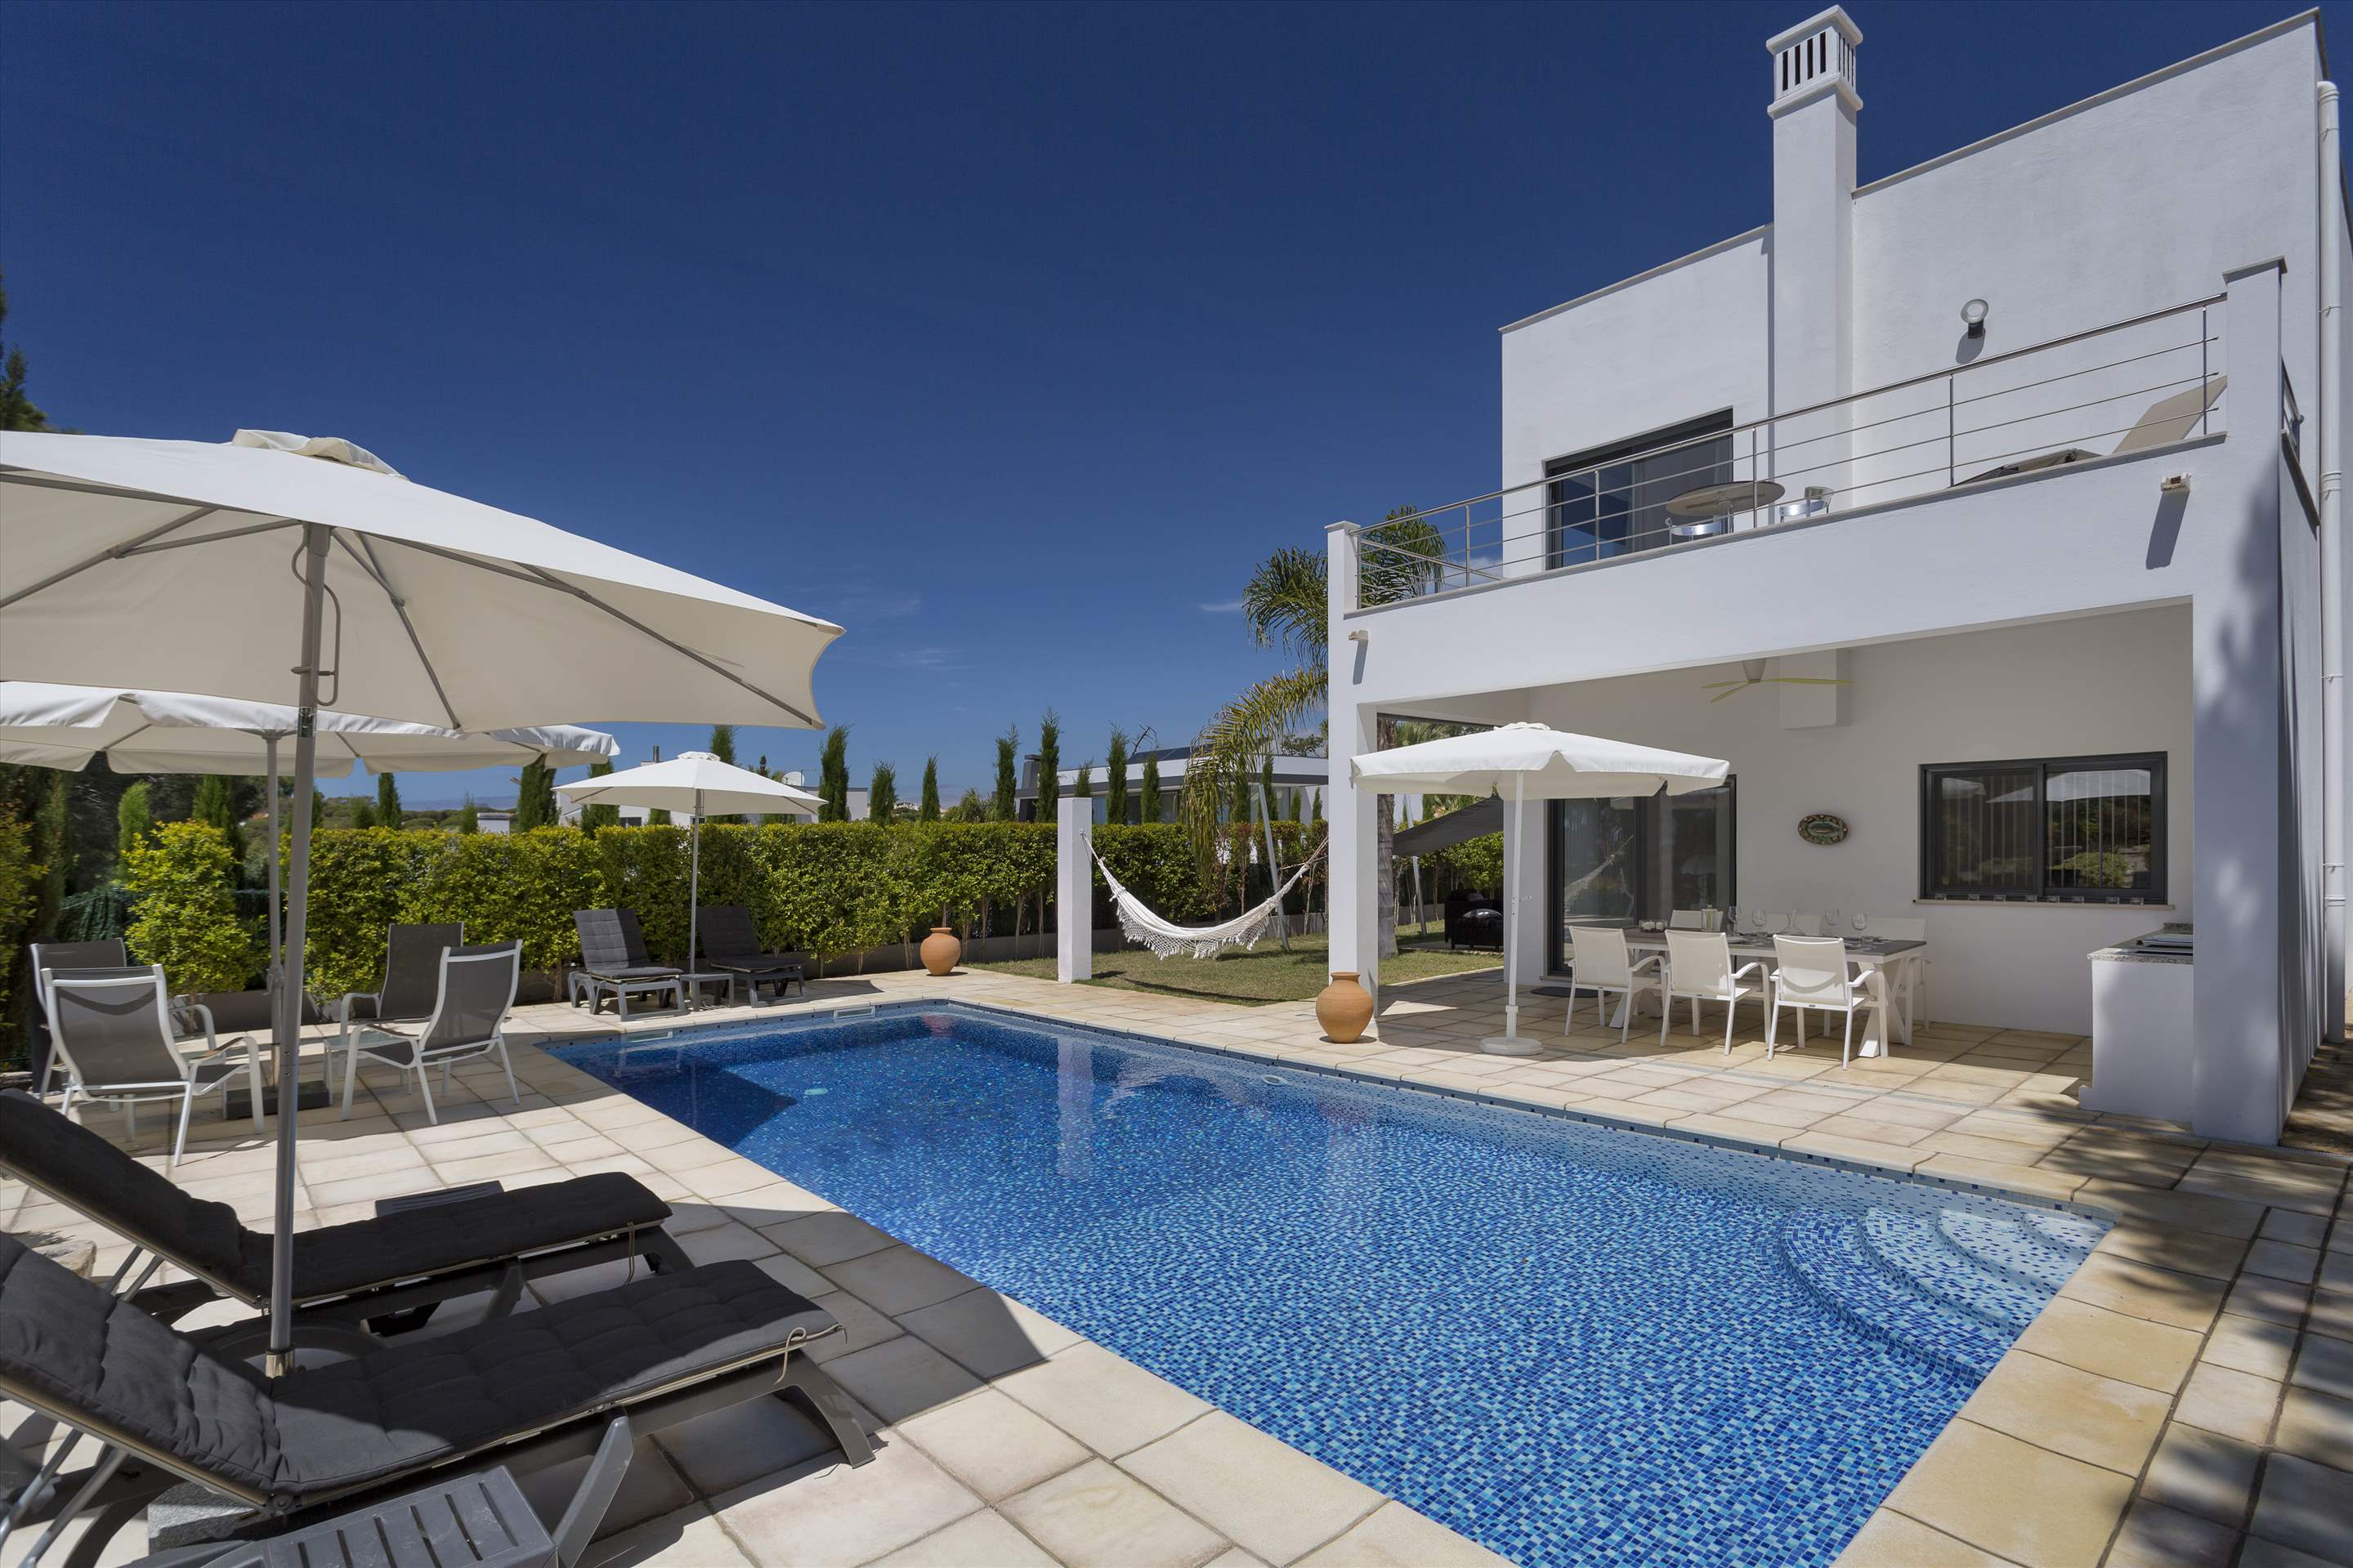 Villa Selena, 2 bedroom villa in Quinta do Lago, Algarve Photo #1